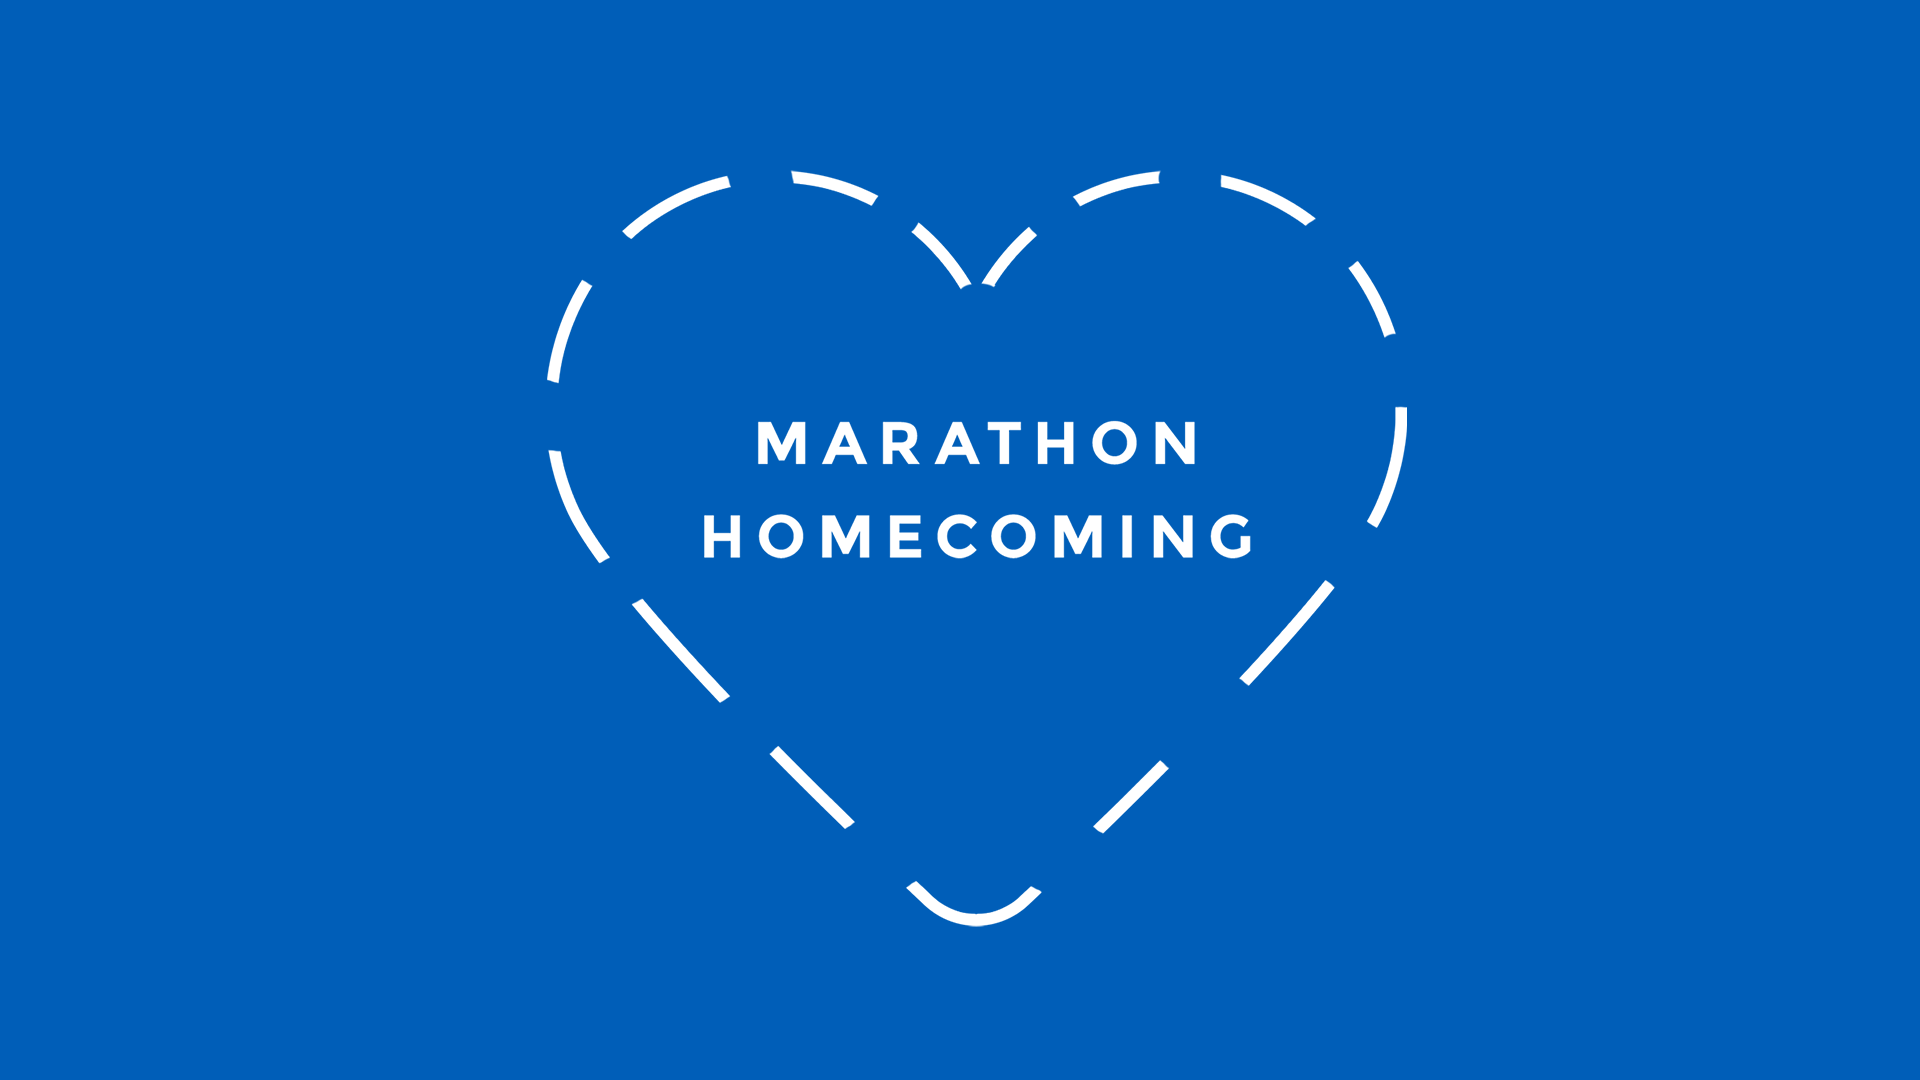 Marathon Homecoming